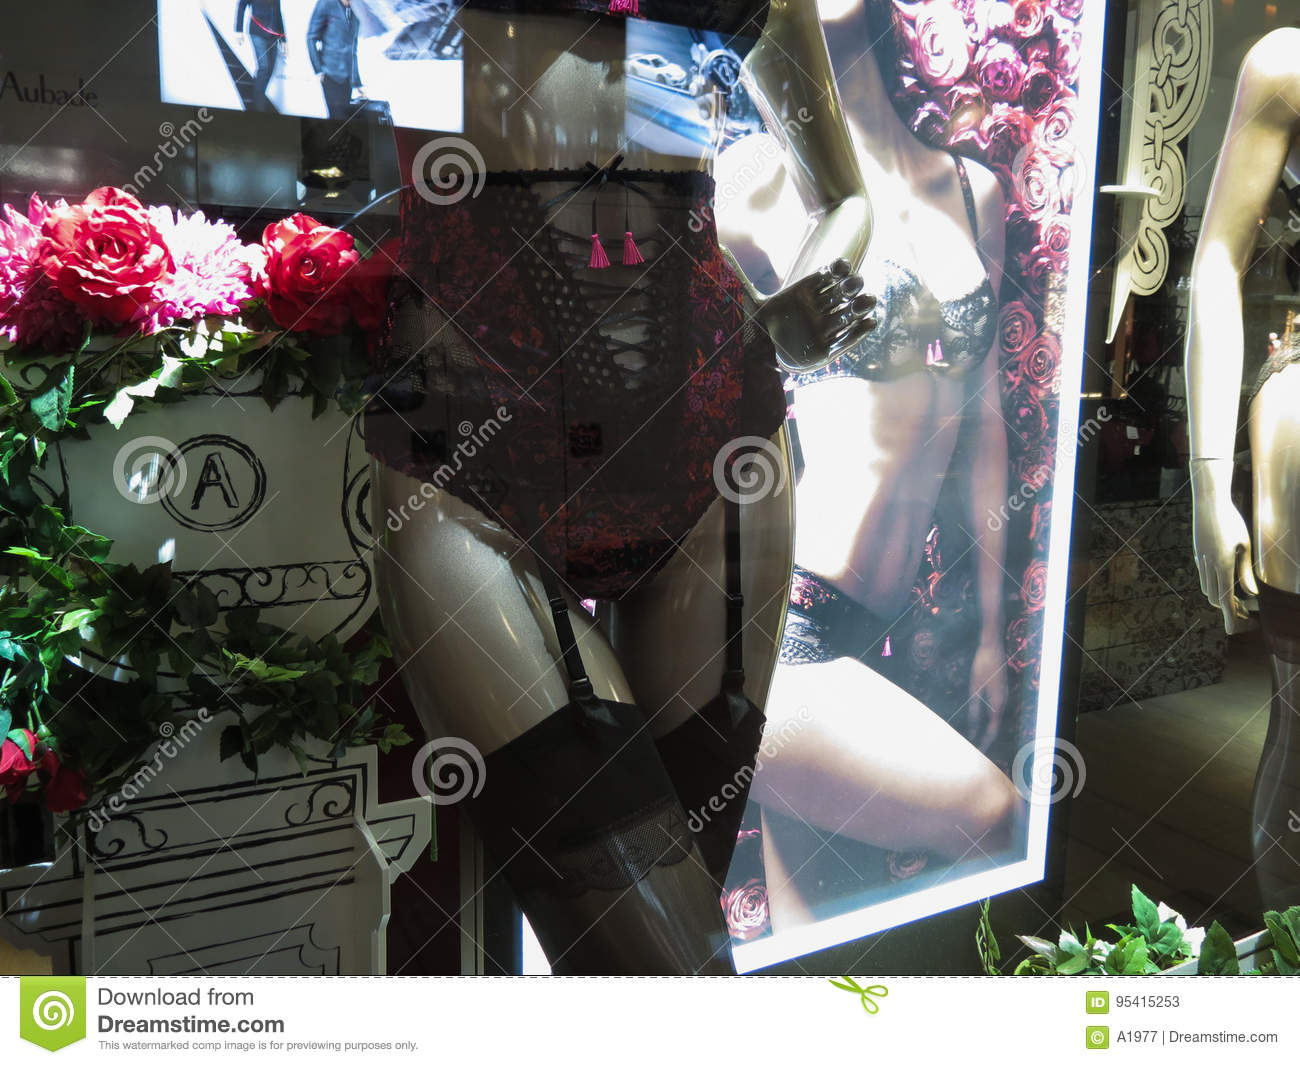 ebd84f3d1c6 Aubade brand store editorial stock photo. Image of romance - 95415253